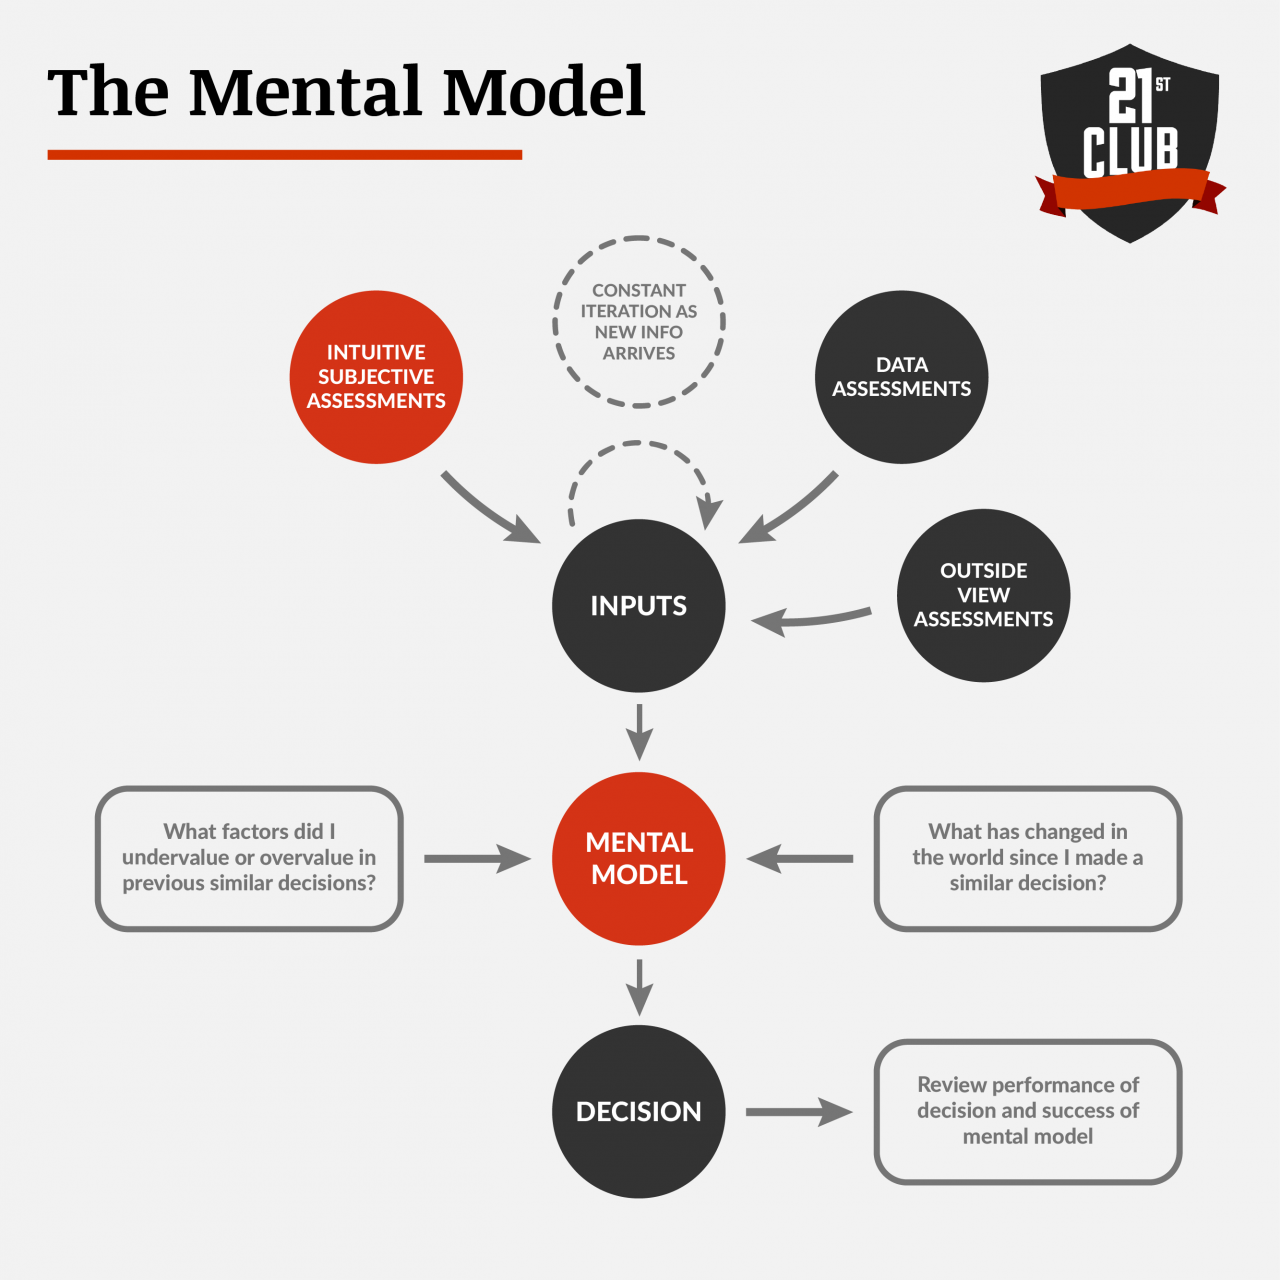 Evaluating the Mental Model